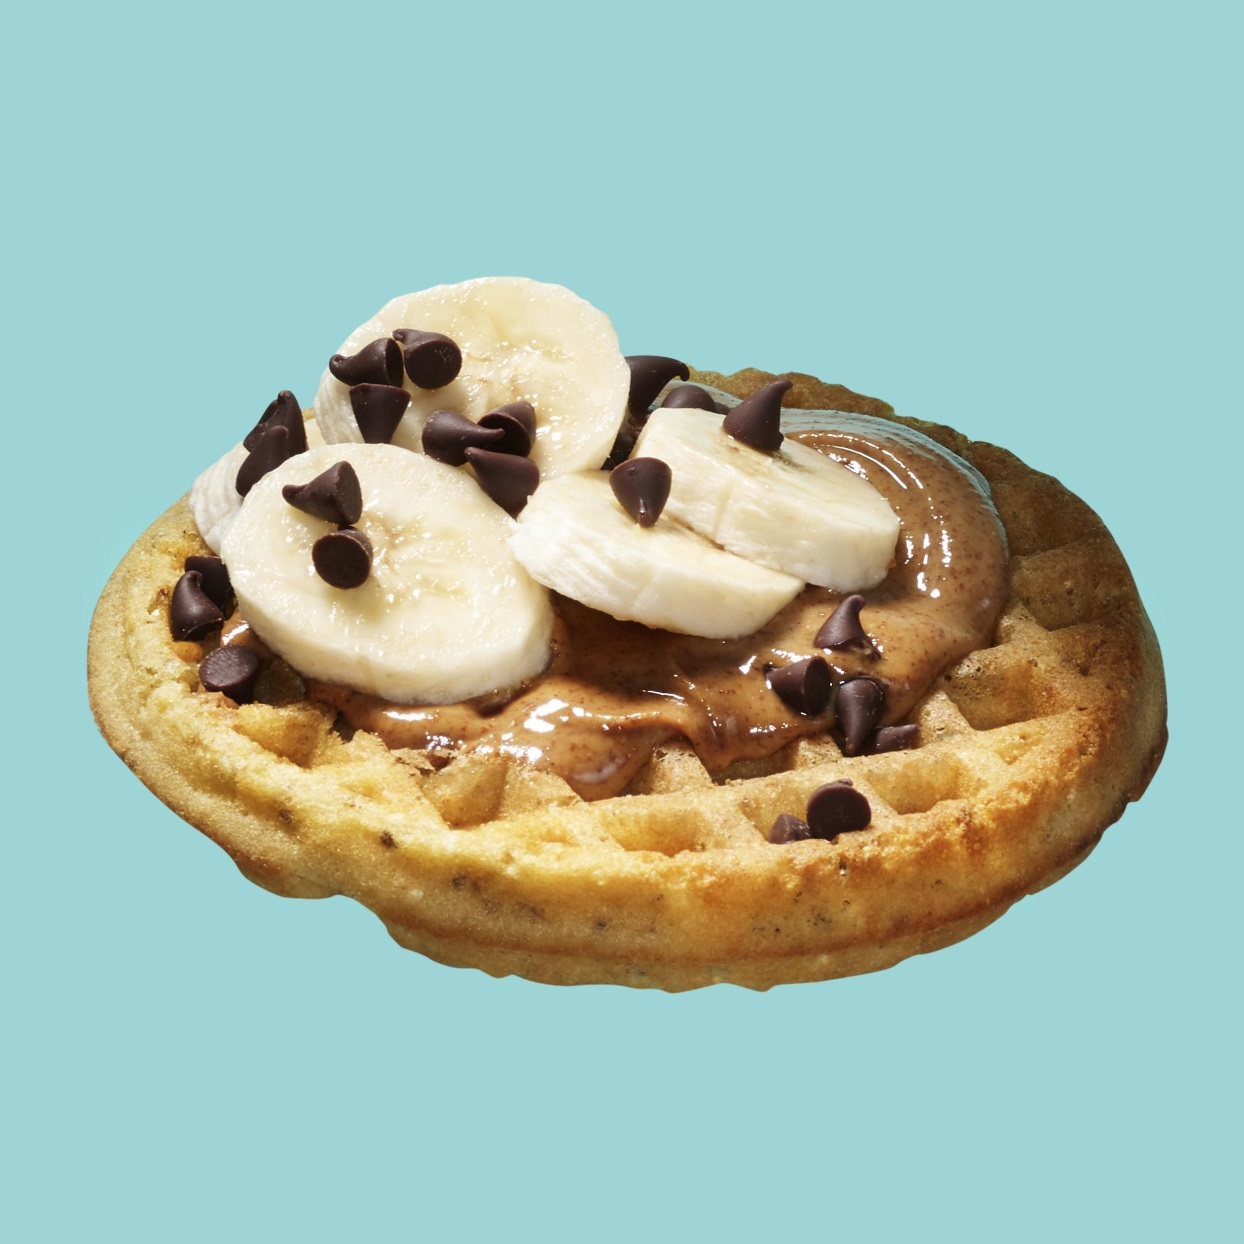 Top a whole-grain freezer waffle with nut butter, banana slices and chocolate chips for a decadent-tasting and healthy breakfast or snack you can whip up when you're short on time. This high-protein, high-fiber breakfast may be ready before your coffee is finished brewing. Source: EatingWell Magazine, September 2019